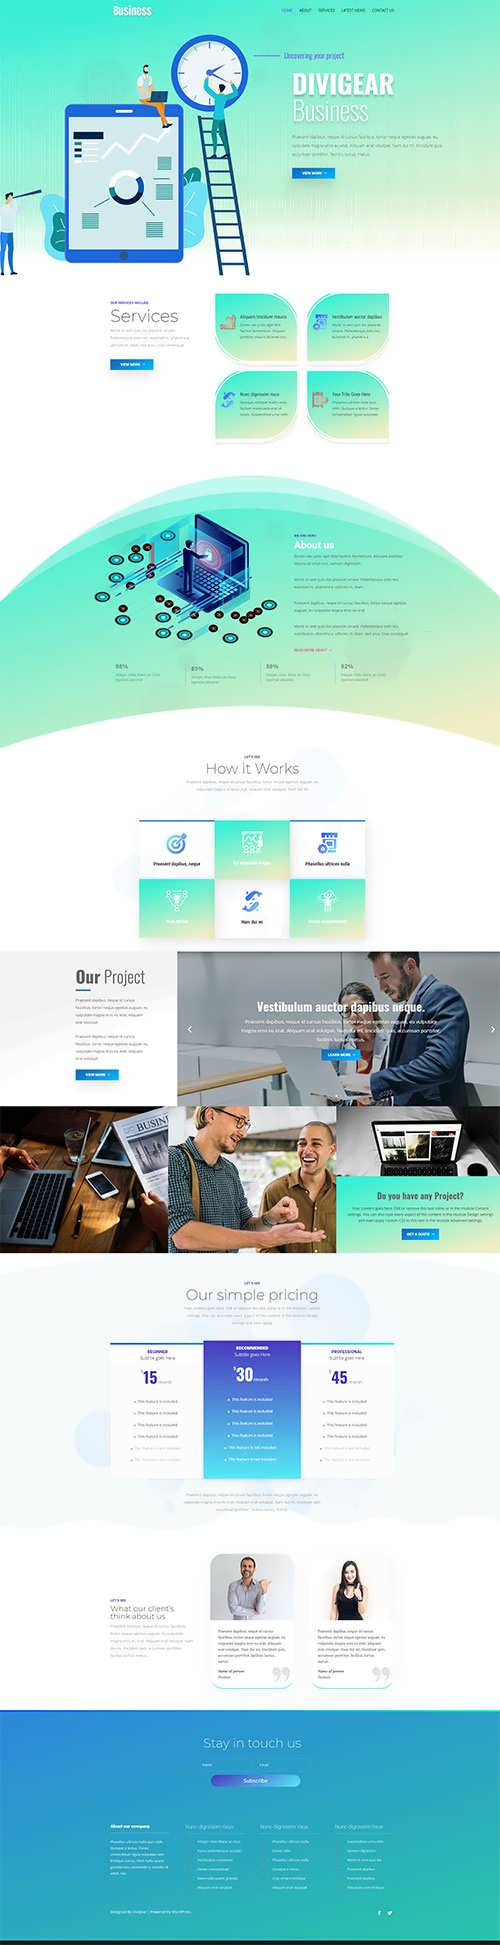 Business Divi Child Theme DiviGear